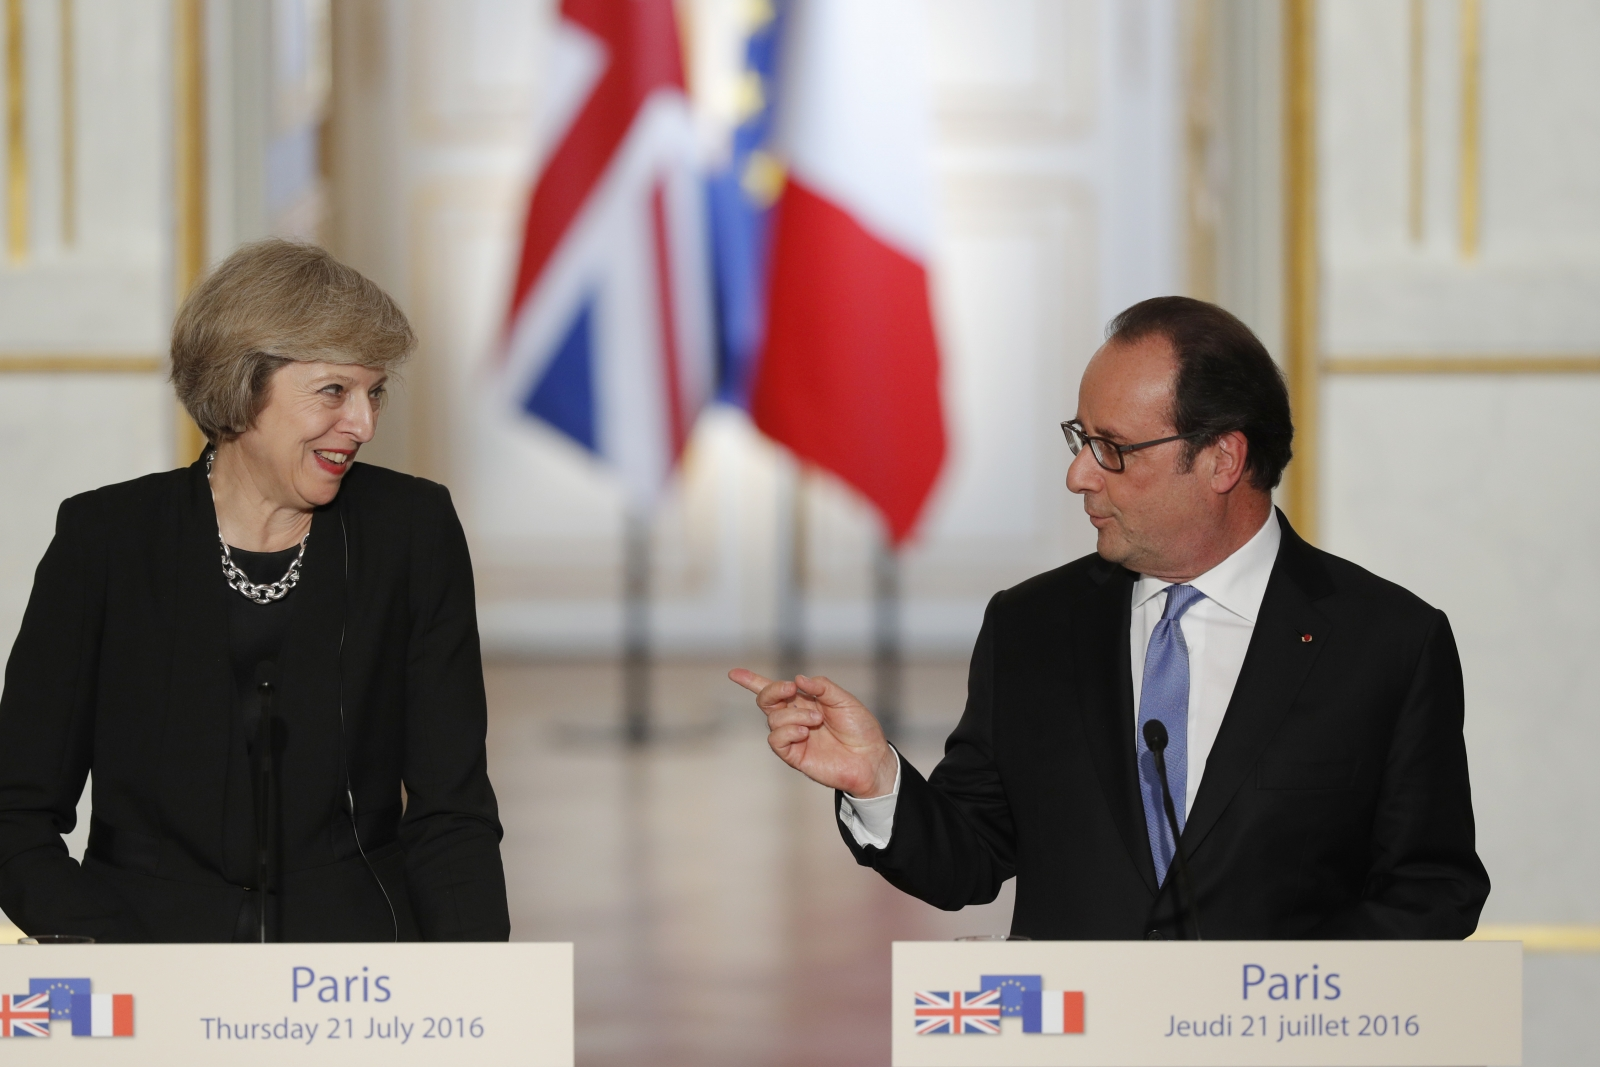 Theresa May Francois Hollande conference